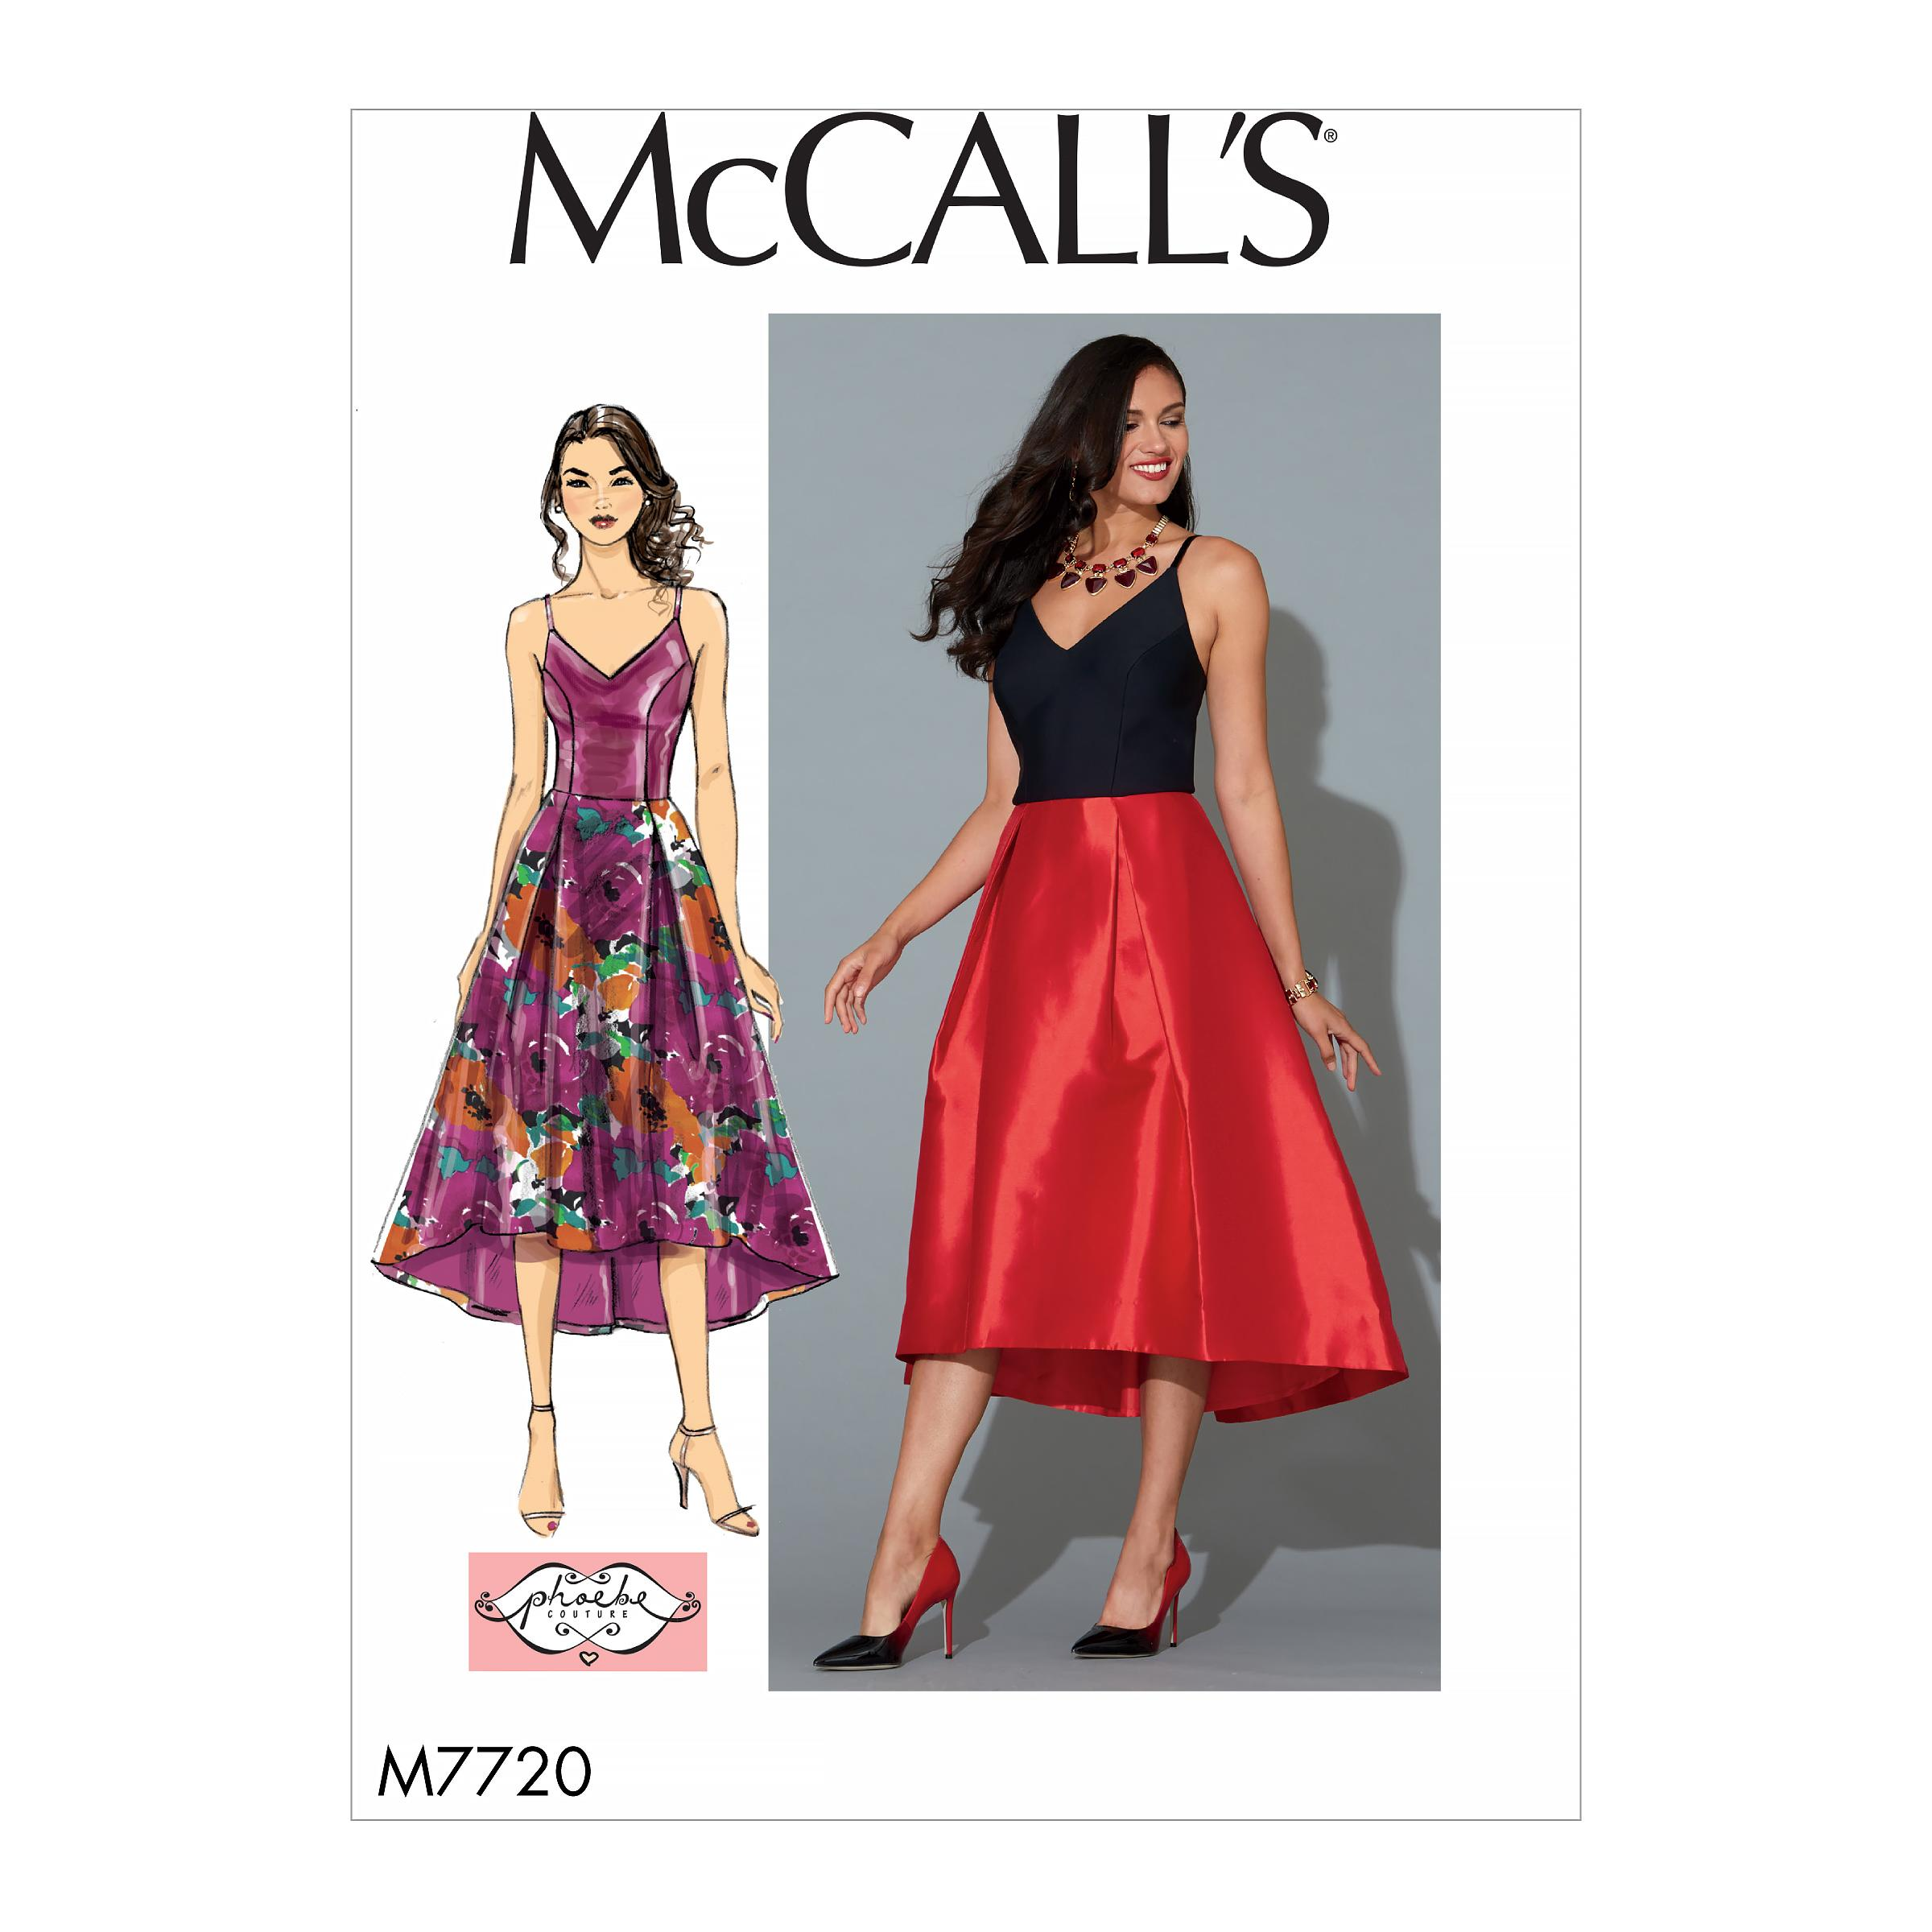 McCalls M7720 Misses Dresses, Misses Prom, Evening & Bridal